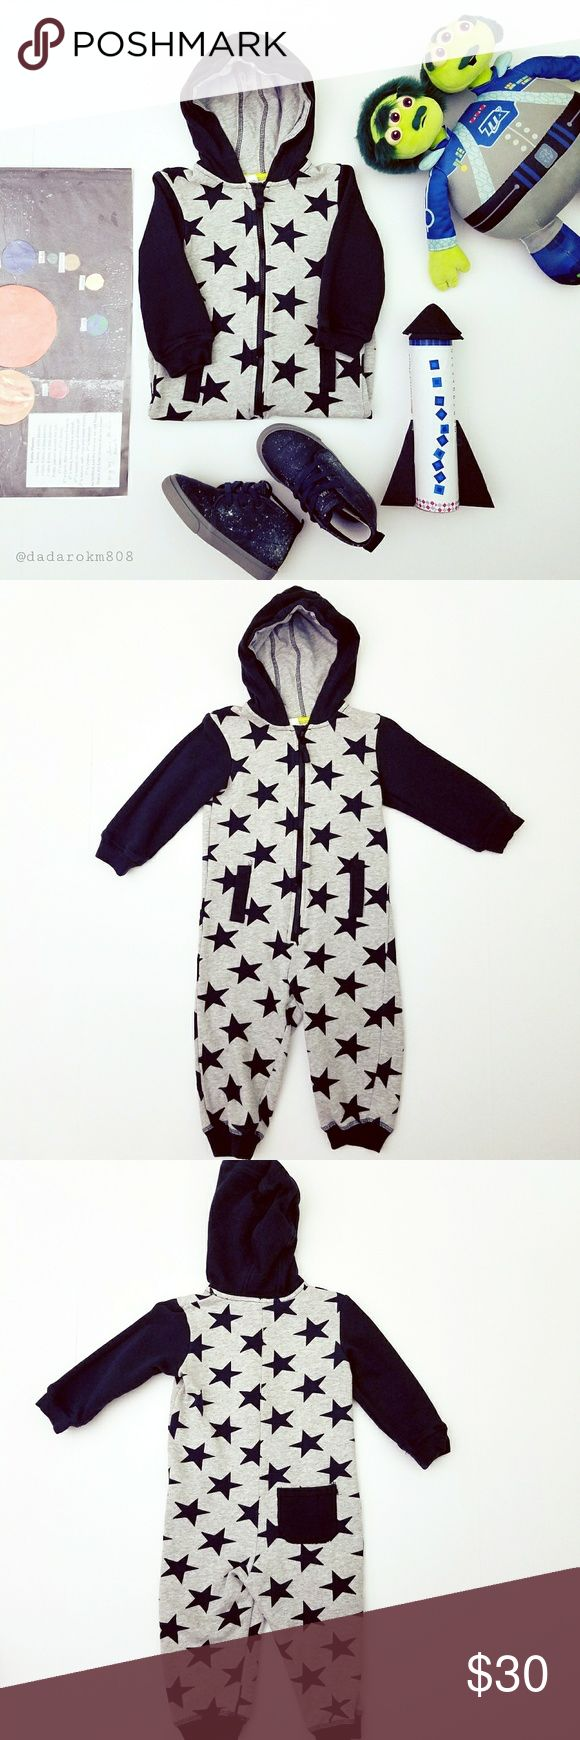 "Toddlers H&M Onsie (size 1-1/2 to 2Y) Adorable star designed onsie by H&M! It is pre-loved but in good condition; no holes or tears. Your little superstar will look super cute running around the playground in this! Features one functional pocket in back (see picture); and two non-functional front pocket slits. Measurements: overall length is 26.5"", inseam 10"", arms 11.5"", zipper opening 13"" in length, chest 11.5"" across. Much Mahalo for checking it out! 😄🤙🏼Offers welcomed as always! H&M…"